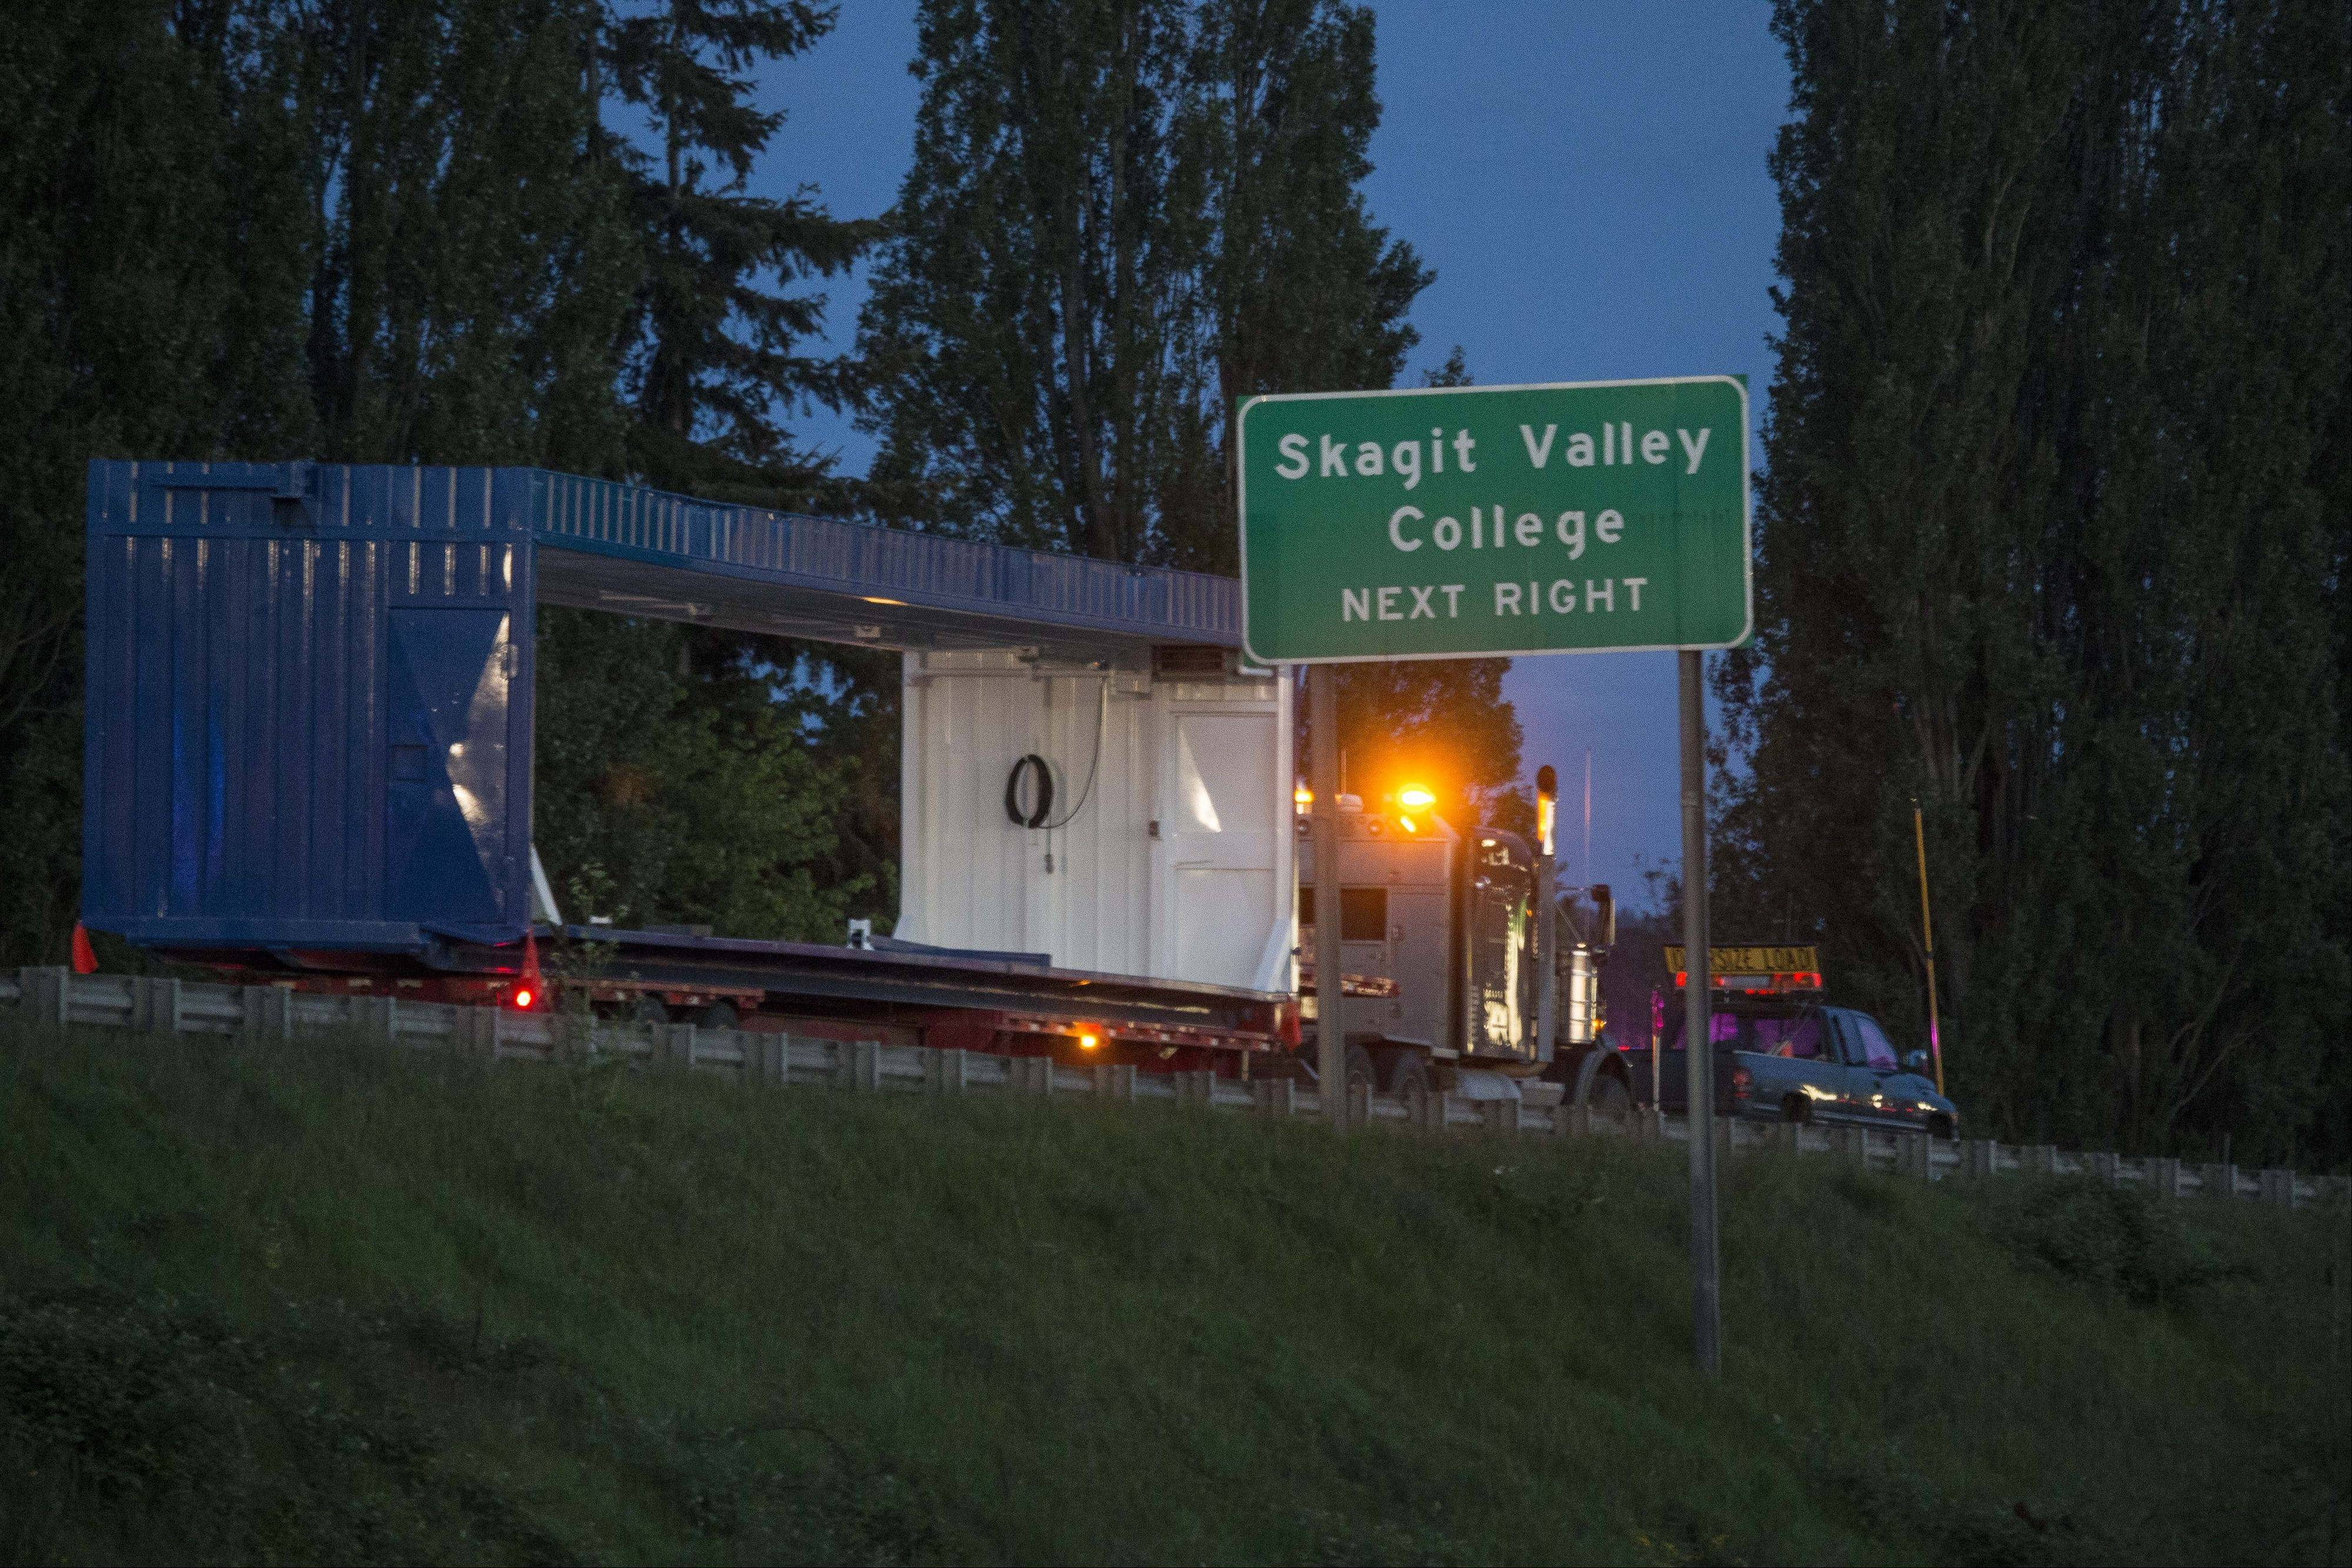 An Interstate 5 bridge over a Skagit river collapsed north of Seattle Thursday evening May 23, 2013, dumping two vehicles into the water and sparking a rescue effort by boats and divers as three injured people were pulled from the chilly waterway. Washington State Patrol Chief John Batiste says this tractor-trailer carrying a tall load hit an upper part of the span, causing the collapse.